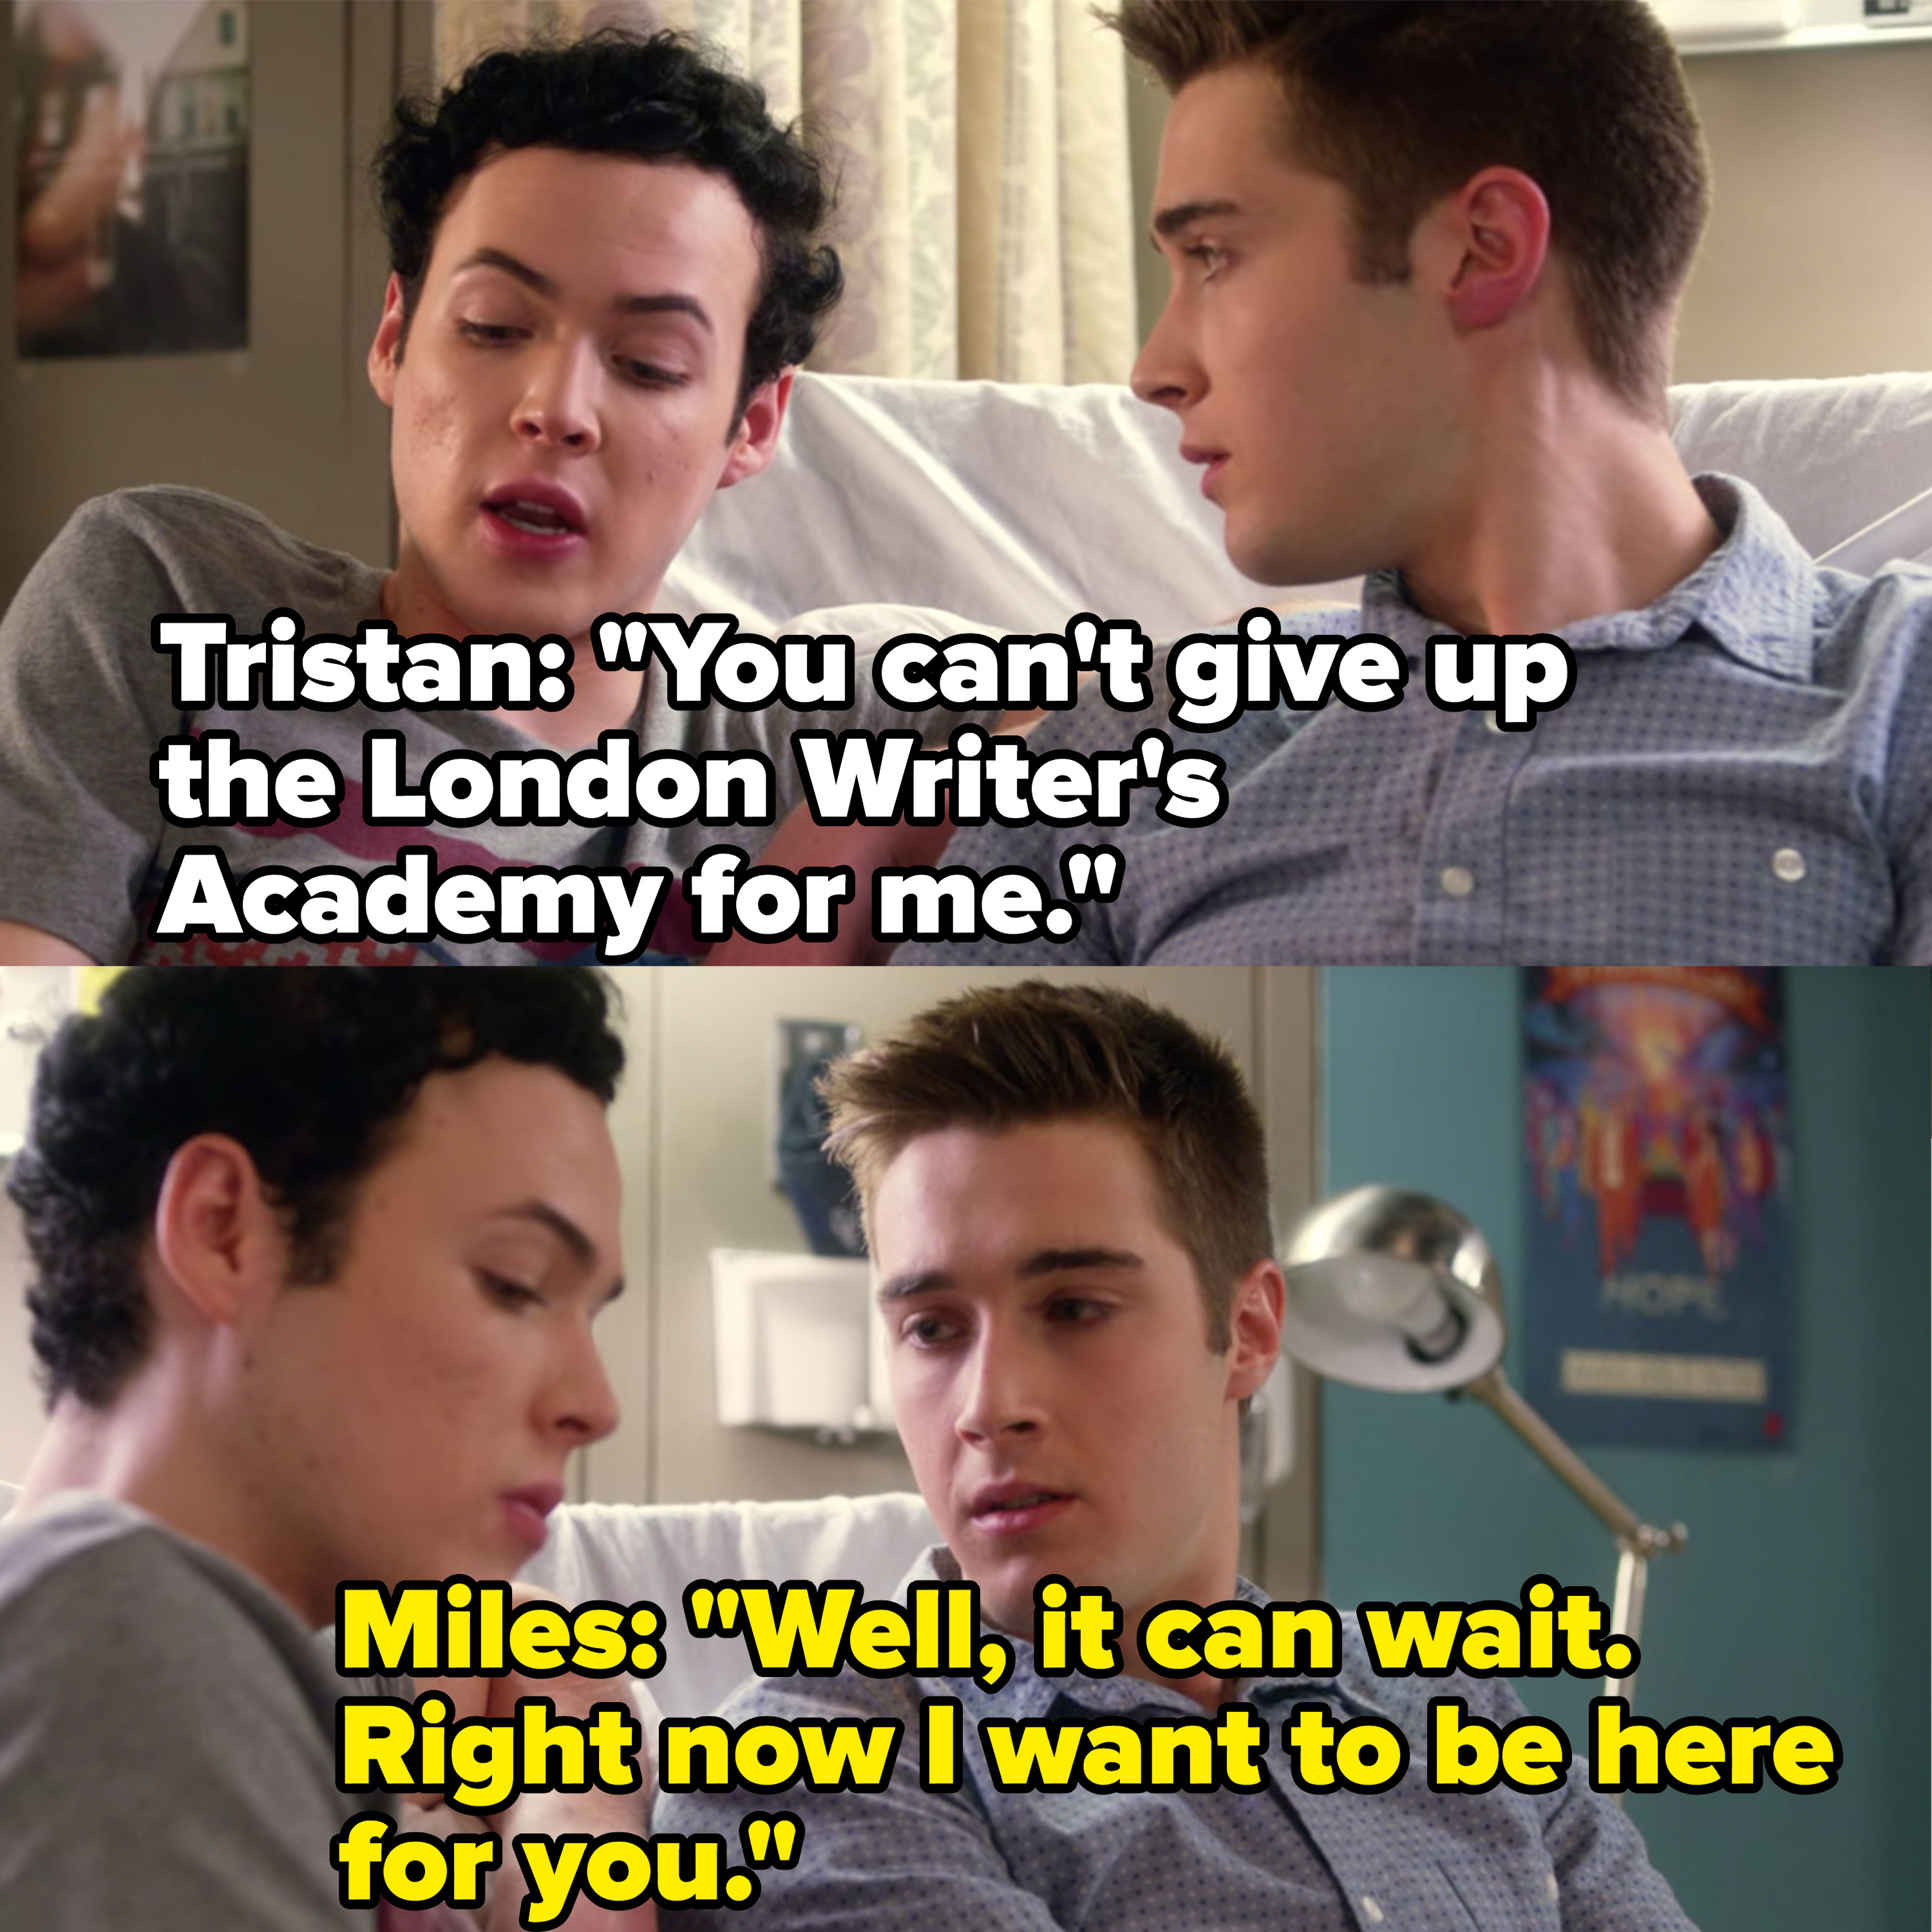 Miles tells Tristan that school can wait because he wants to be there for him